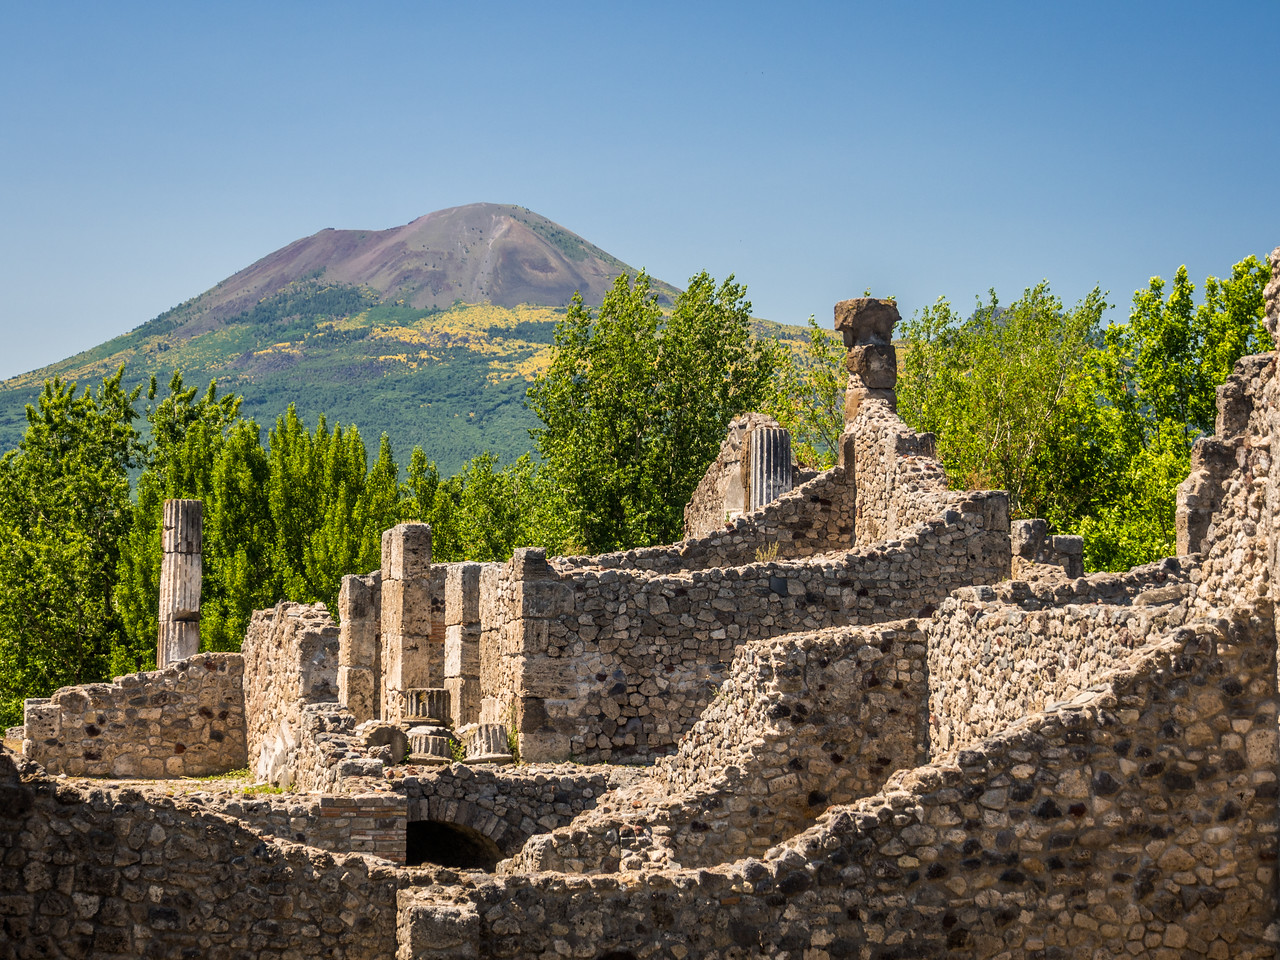 Ruined Walls and the Volcano, Pompeii, Italy